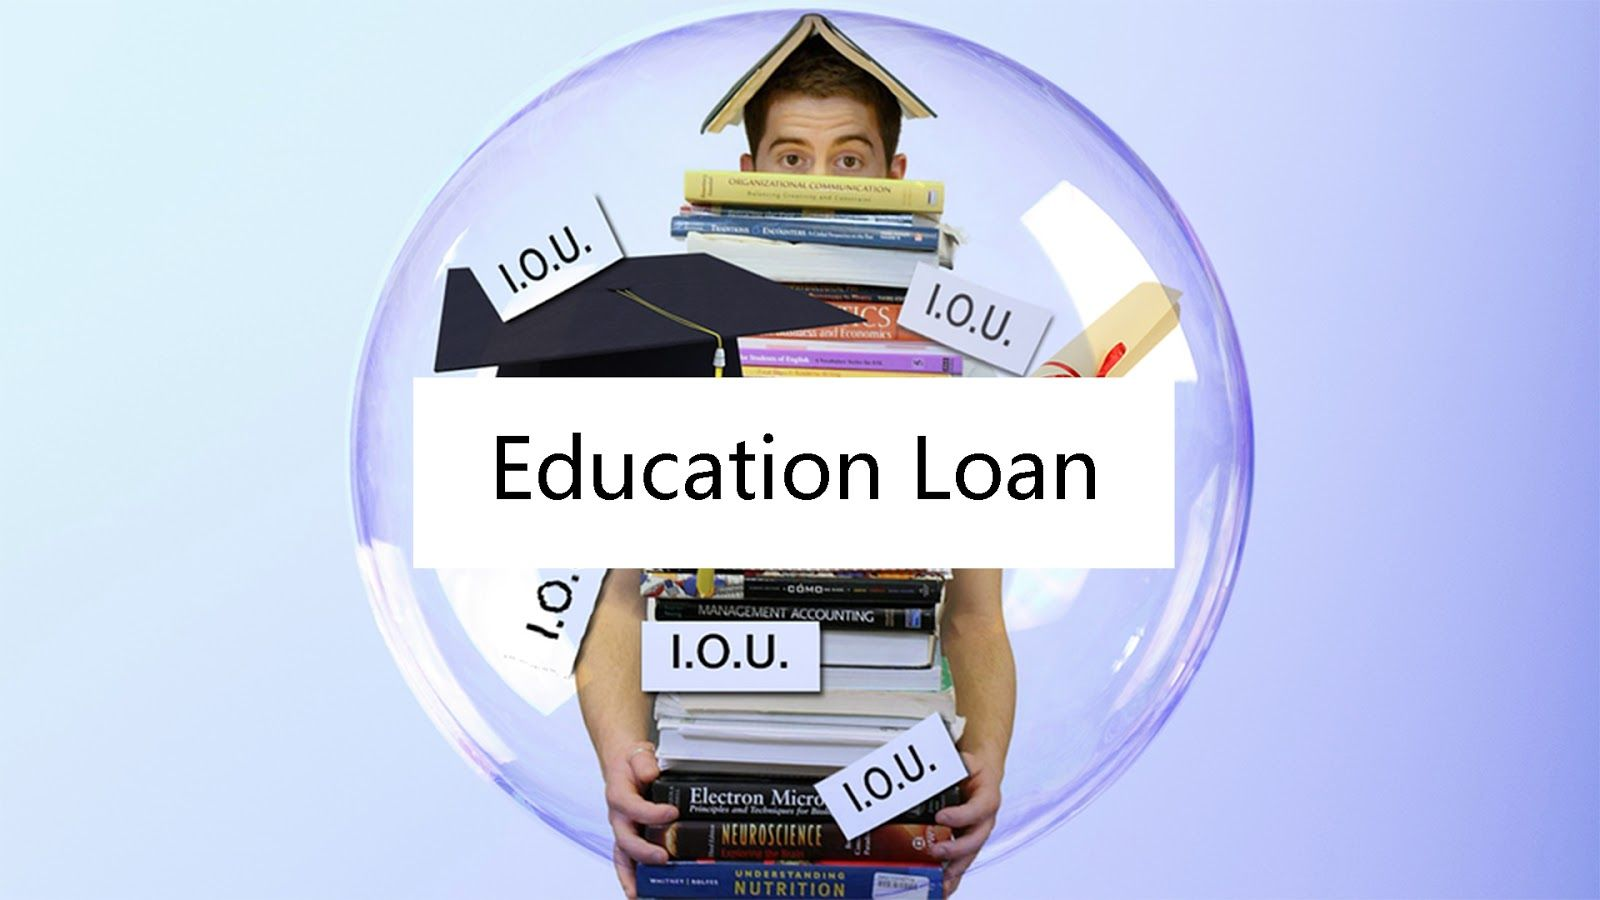 Education Loan Criteria Student Loan Calculator Education Student Loans